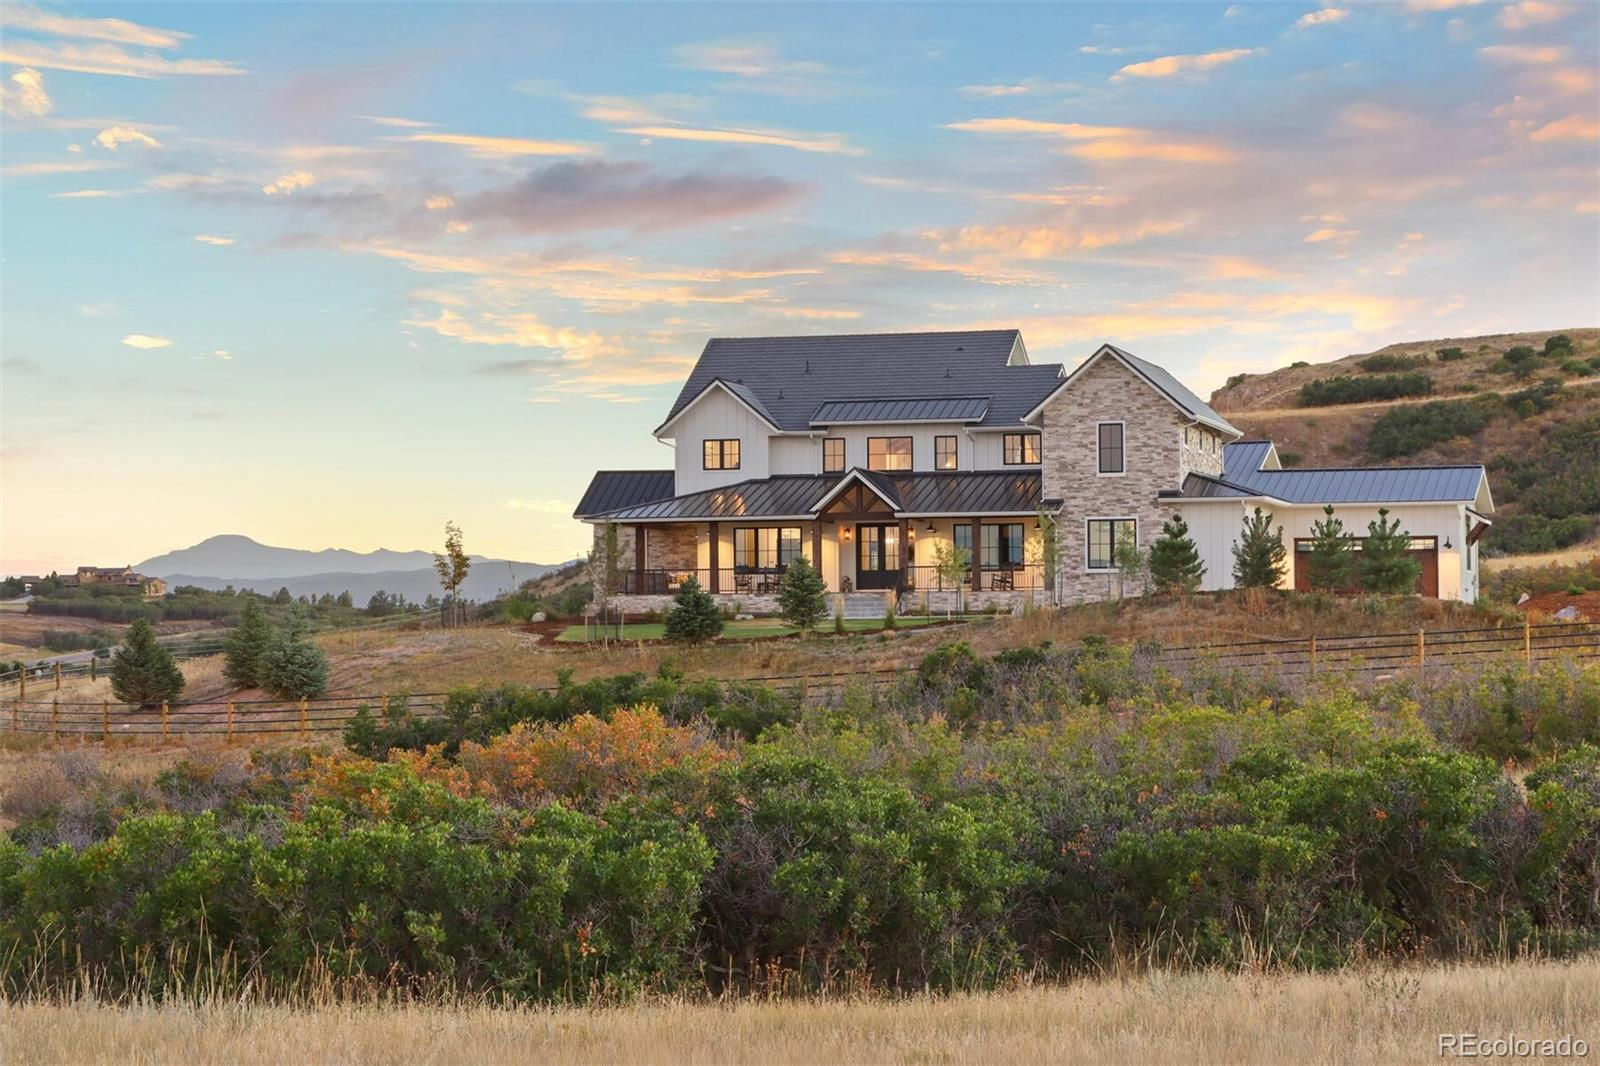 """An extraordinary sanctuary nestled within a breathtaking setting, this residence is truly an original, masterfully designed and constructed in 2020 with exquisite attention to detail. Artfully blending a style of modern farmhouse infused with European flair, this home offers views of Pikes Peak, Front Range and """"The Castle Rock."""" On 35 acres, the home and landscaping is enclosed by a post-and-rail fence and gated driveway. Inside, expansive windows provide sweeping views; outside, scenic living spaces include an inviting front porch, expansive rear deck, and a lower patio with fire pit and stone waterfall.   The foyer is magnificent, with French doors and 2-story ceiling dramatically appointed with an iron chandelier. The great room features a 24' vaulted ceiling with reclaimed wooden beams and a whitewashed brick fireplace. A striking wrought-iron staircase leads to the library loft, with a cantilevered landing for a unique suspended look. Start your day in the soul renewing sunroom, which is guaranteed to be a favorite room!  The gourmet kitchen and dining room is designed in a contemporary farmhouse style, with a wall of accordion-paneled doors that open to the deck. The walk-in butler's pantry is a room of its own, with butler's sink, microwave, beverage center, ice maker and storage galore!   The main-floor master is elegant and refined, with a walk-in closet, designed by California Closets®, and idyllic views of Pikes Peak. The master bath is astounding with fabulous views, white Carrara marble counters, and a freestanding tub.   The walk-out, lower level includes a rec room with a show-stopping wet bar and kitchen, plus a gym. There's a bunk room and a separate guest suite with an oversized, accessible ensuite.   The home includes state-of-the-art smart home automation and the land is zoned for two additional buildings if desired. Impressive and livable, this home offers a unique combination of style, setting, location, and privacy."""